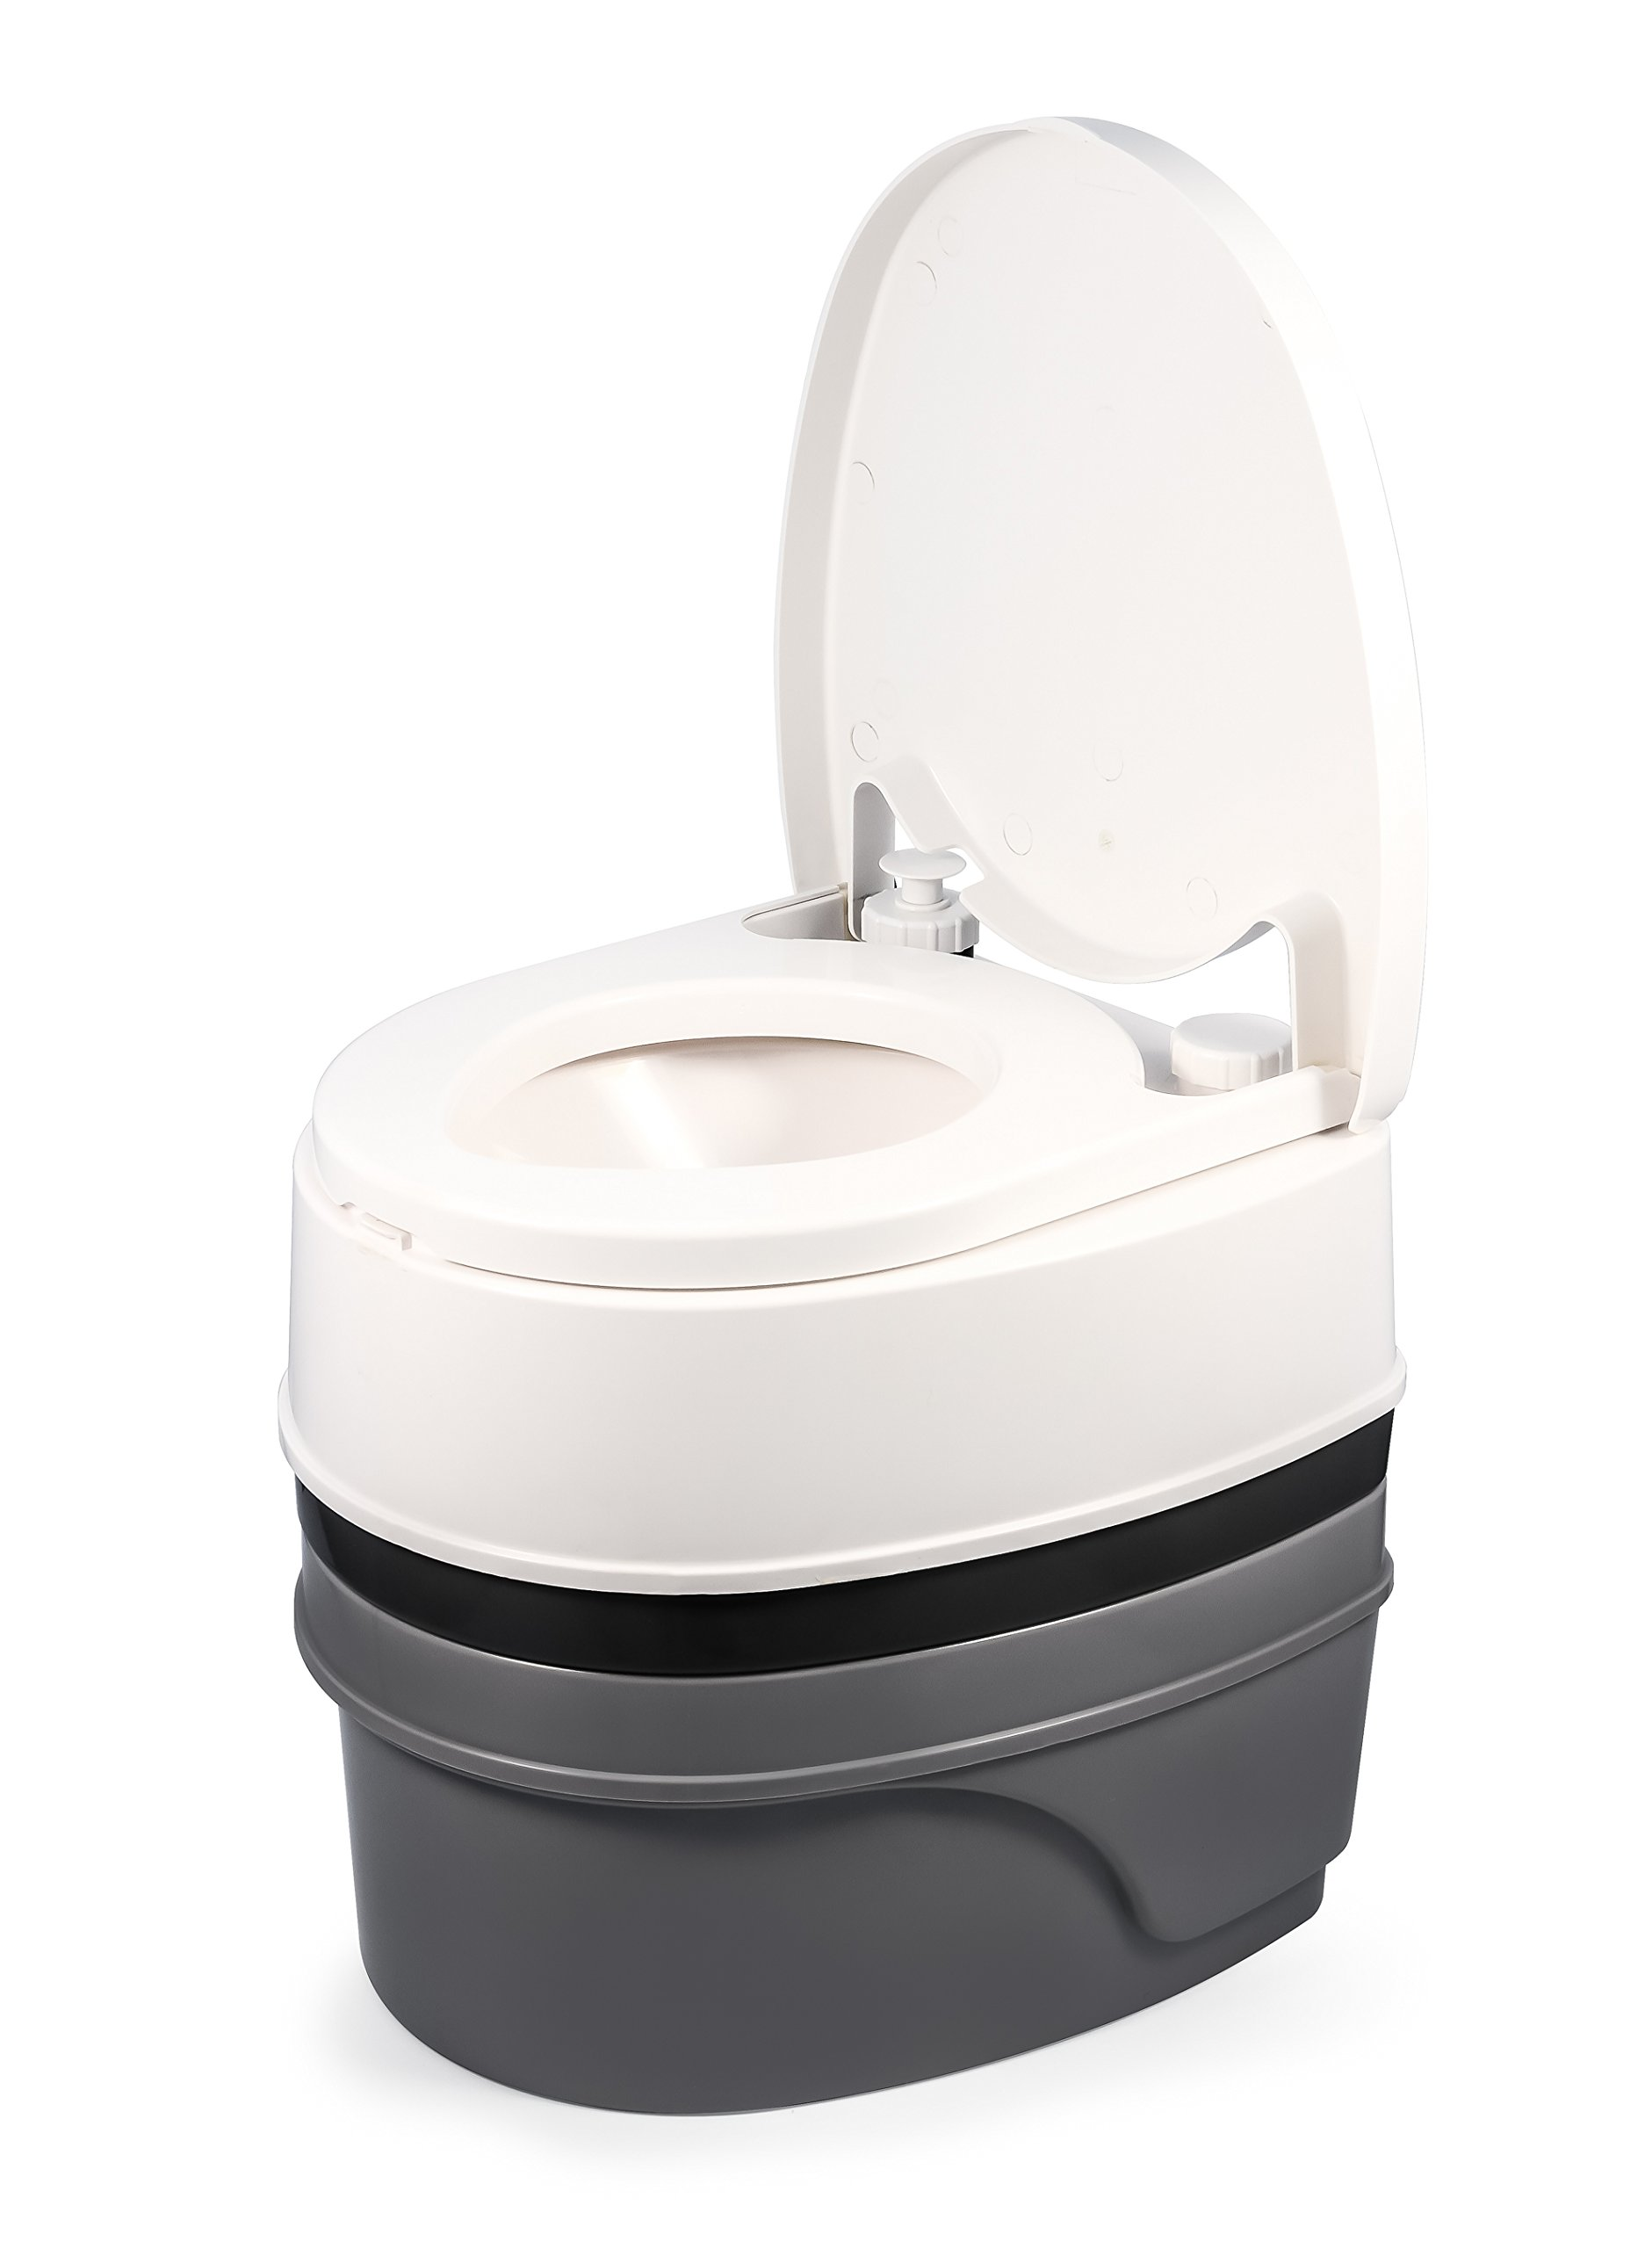 Camco Premium Travel Detachable Tank-Simple Use and Maintenance | Excellent Outdoor Toilet Designed for Camping, Hiking, Boating, RVing and More | 5.3 Gallon Capacity Commode (41544)